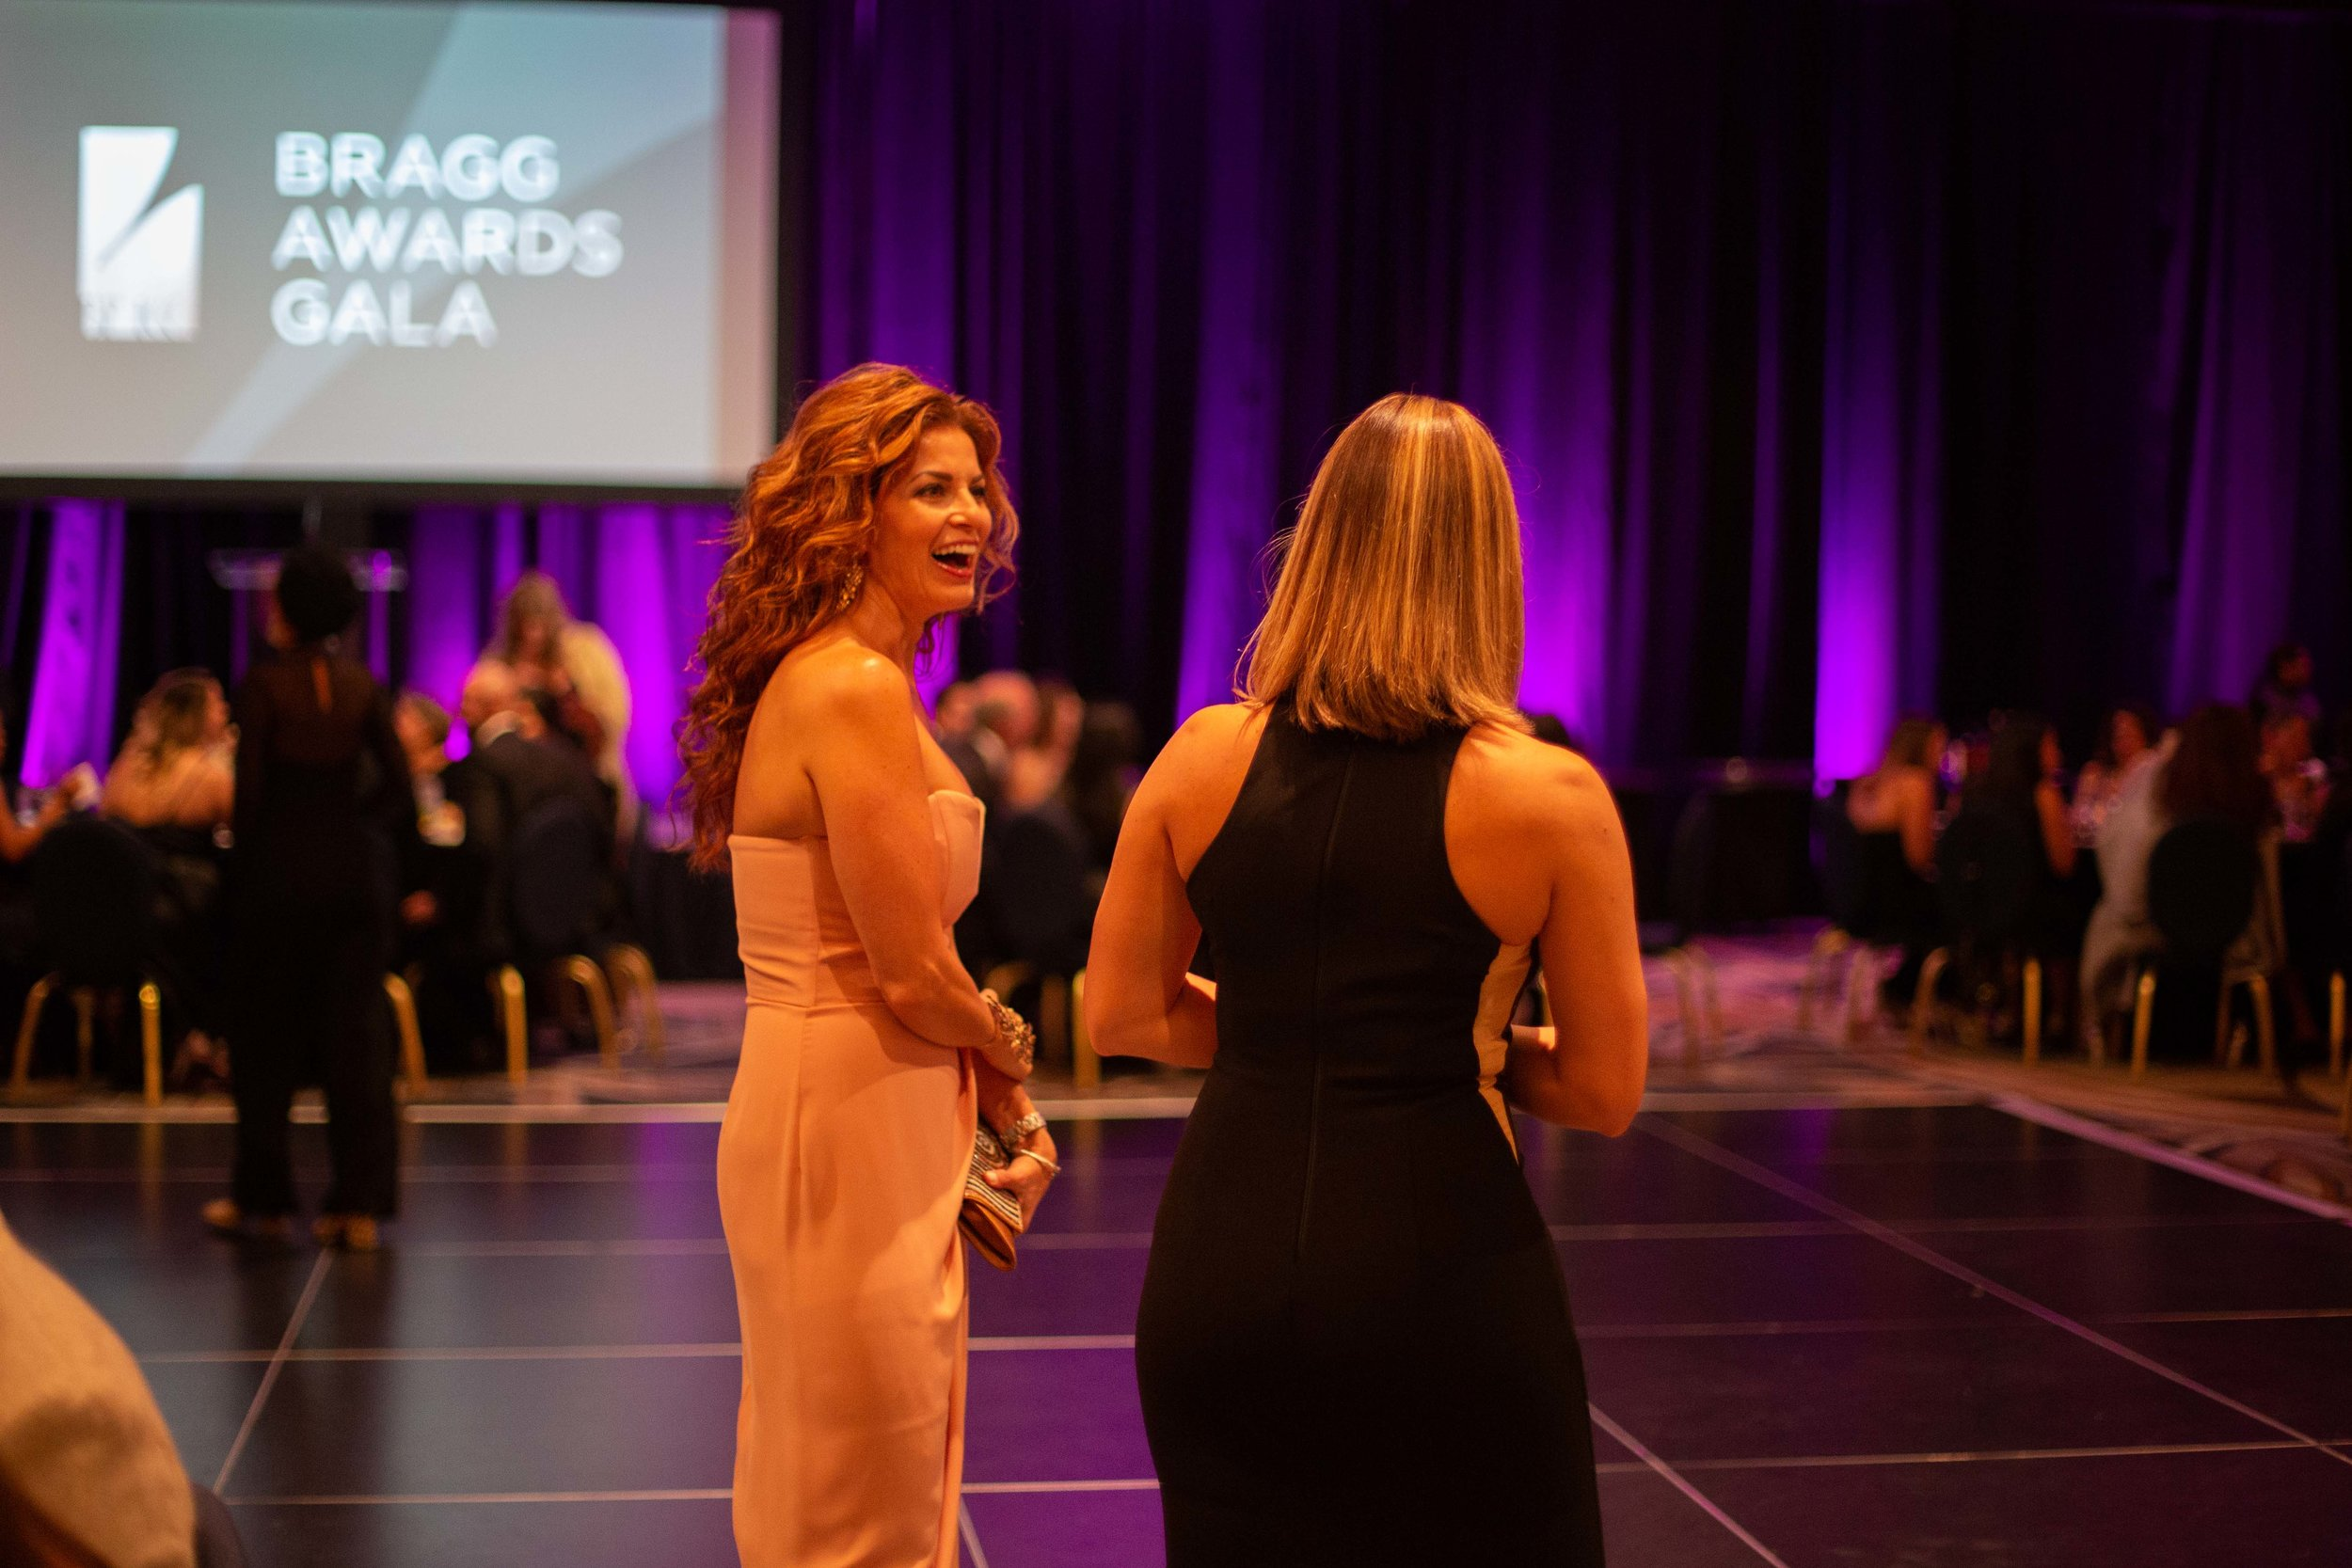 Bragg-Awards-2018-2-13.jpg